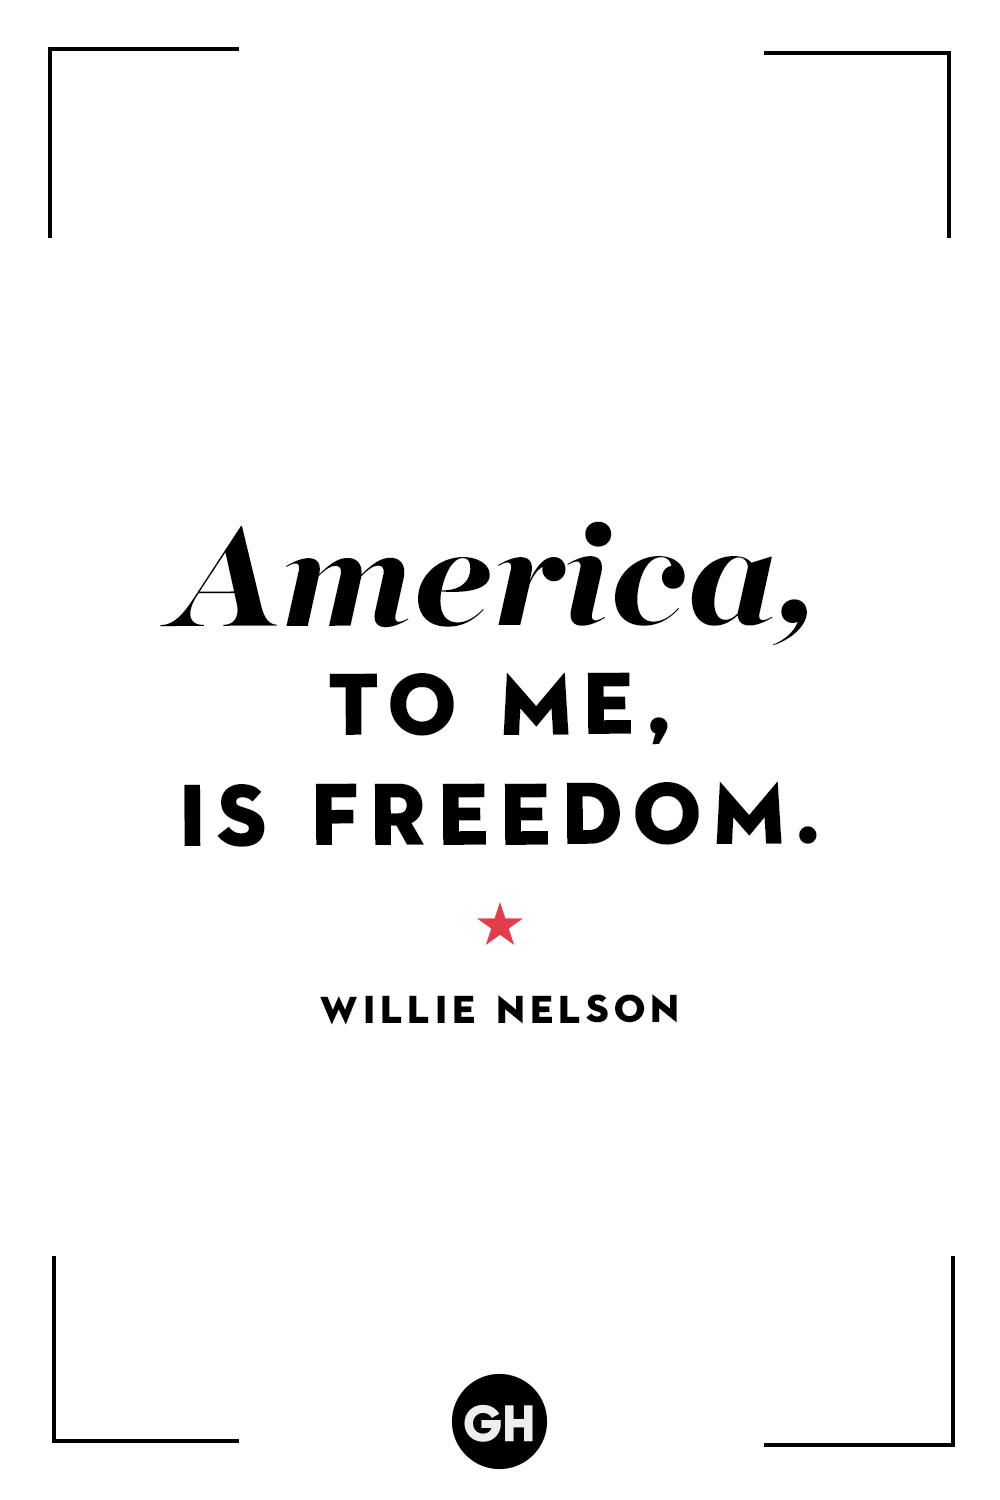 30 Best Fourth of July Quotes - Patriotic Sayings for July 4th